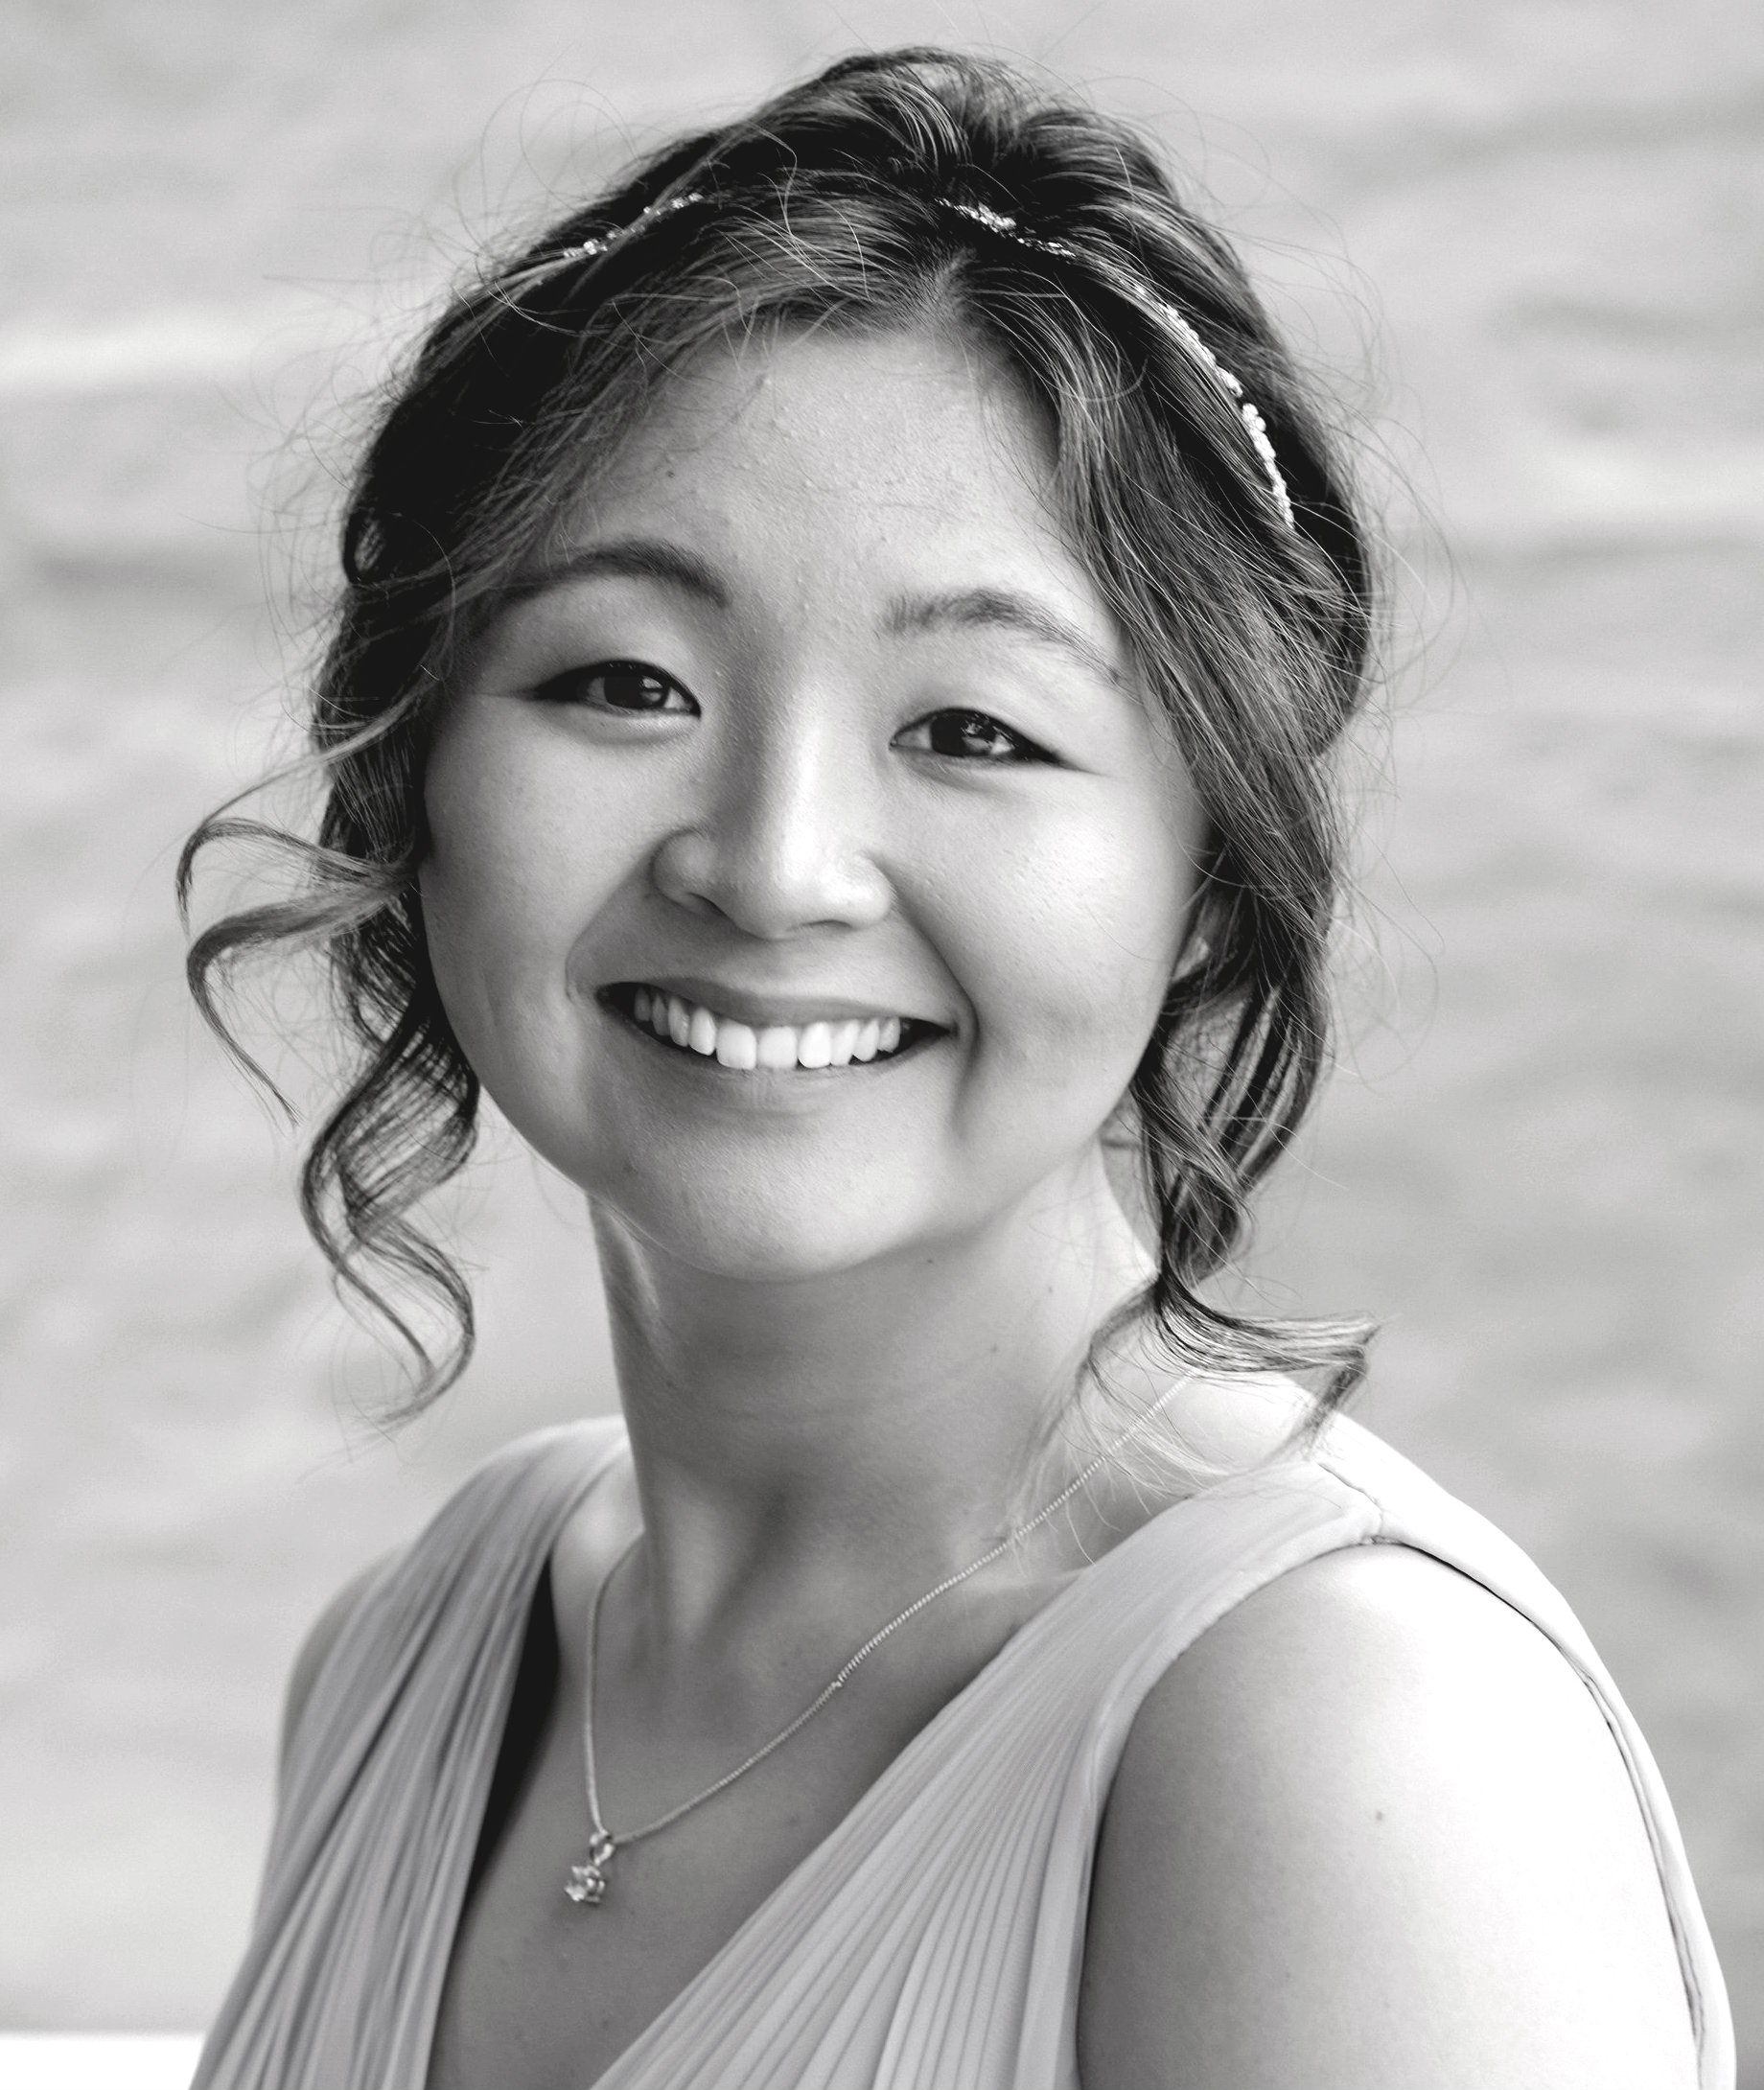 Guest Post: Jiwon Lah-Youn - Jiwon and her two little sisters have loved exploring their Catholic faith, passed down to them by their mother and grandmother. As a medical student, currently on prac in Bundaberg, Jiwon loves caring for others and has always wanted to be a doctor. Her faith journey has taken her on a year of mission with NET Ministries during 2016, to serve at Mazenod College in Melbourne. Serving as an Ignite Young Adult, Jiwon empowers young people in their discipleship to others.